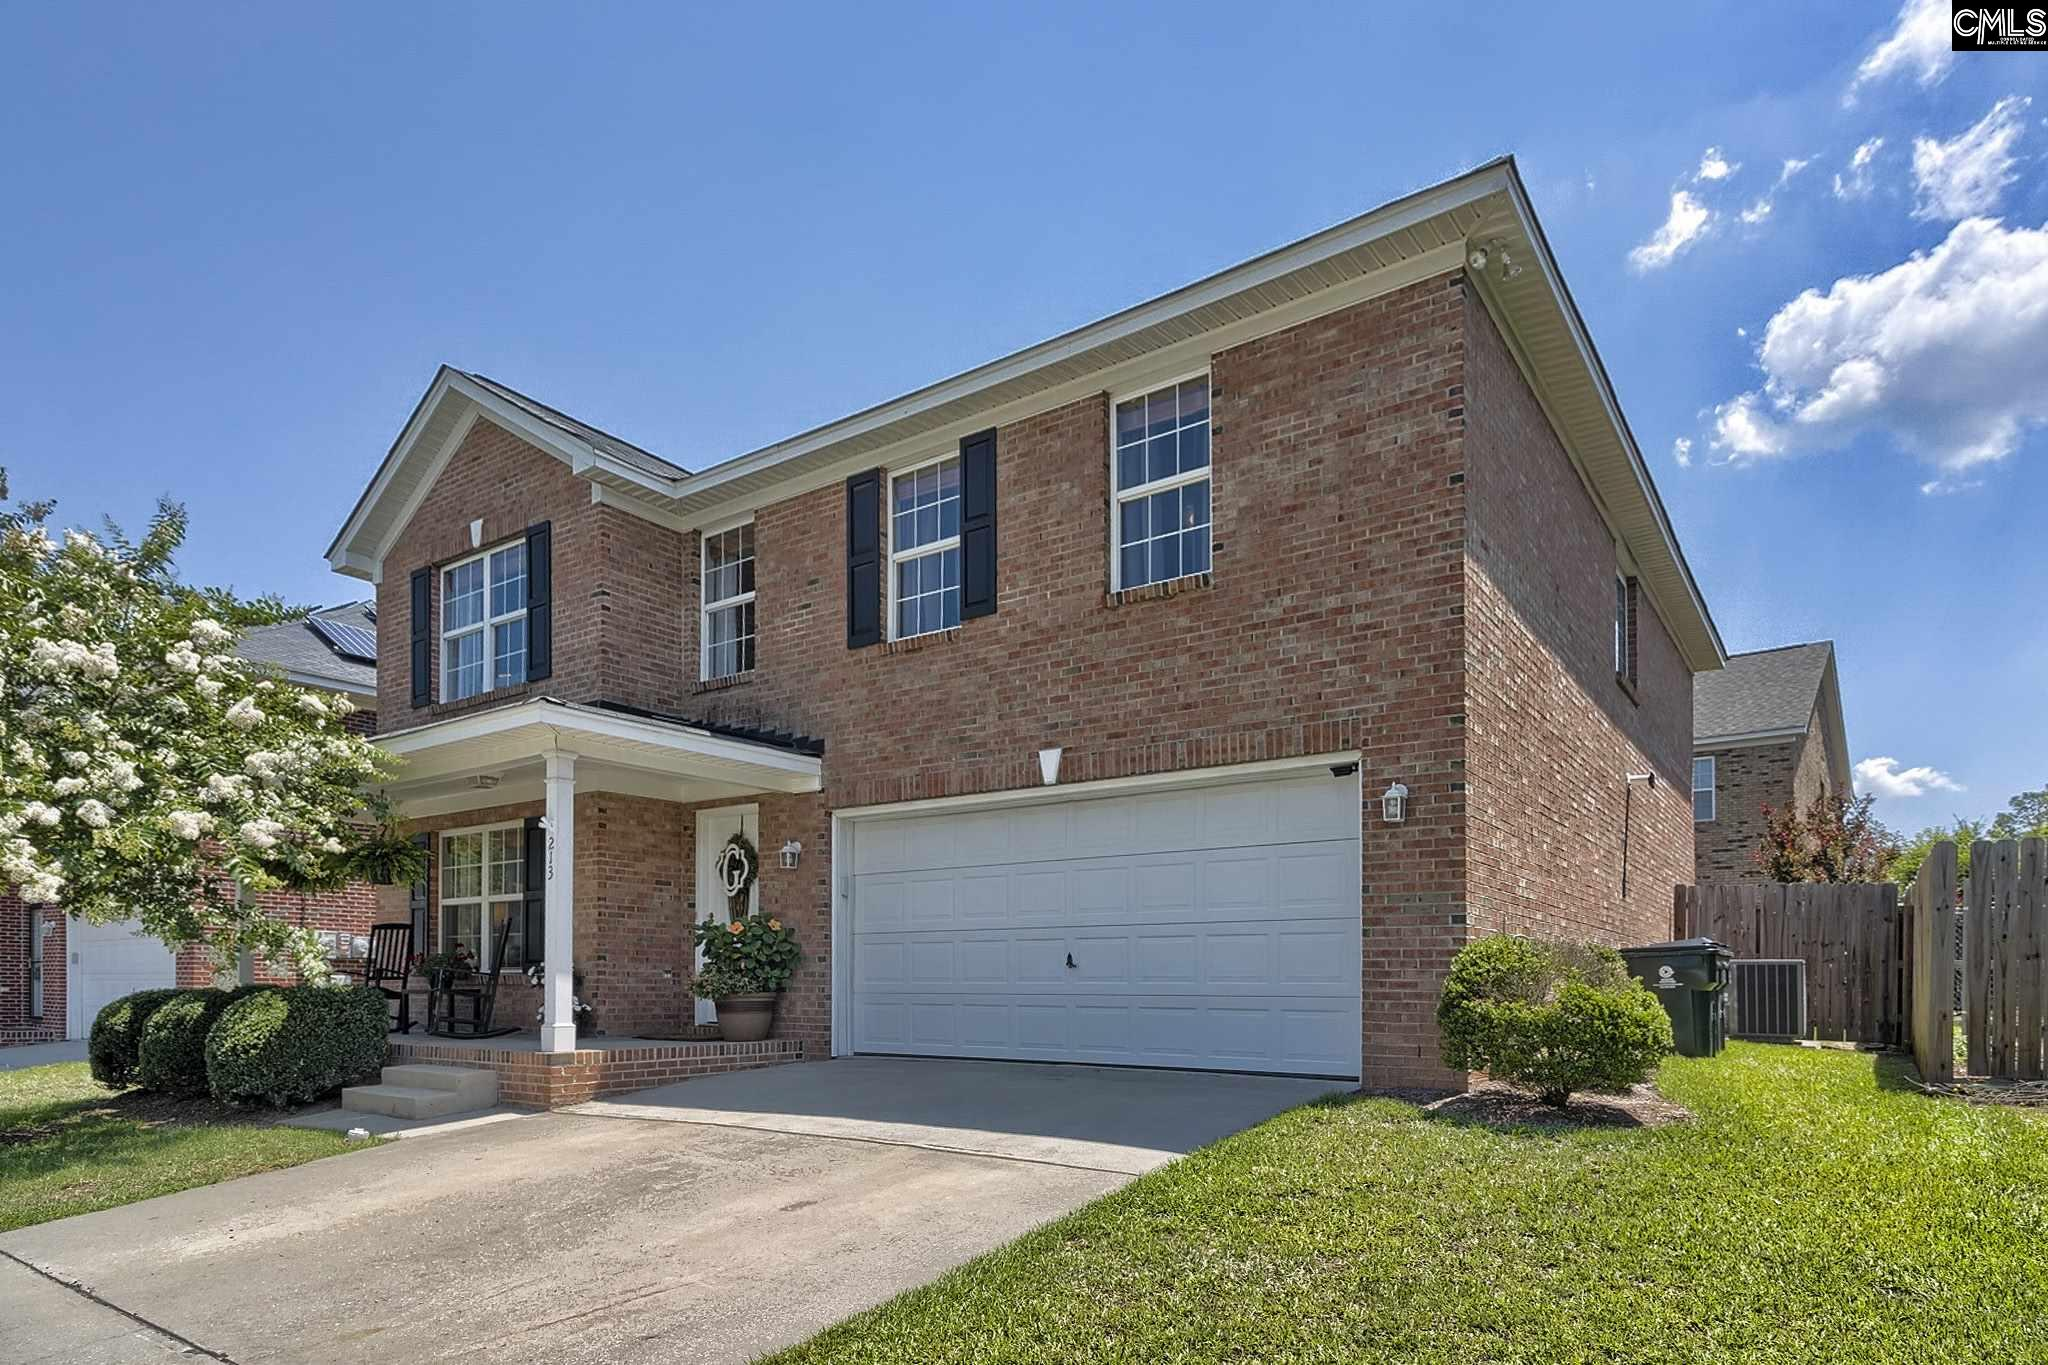 213 Hollingsworth Lexington, SC 29072